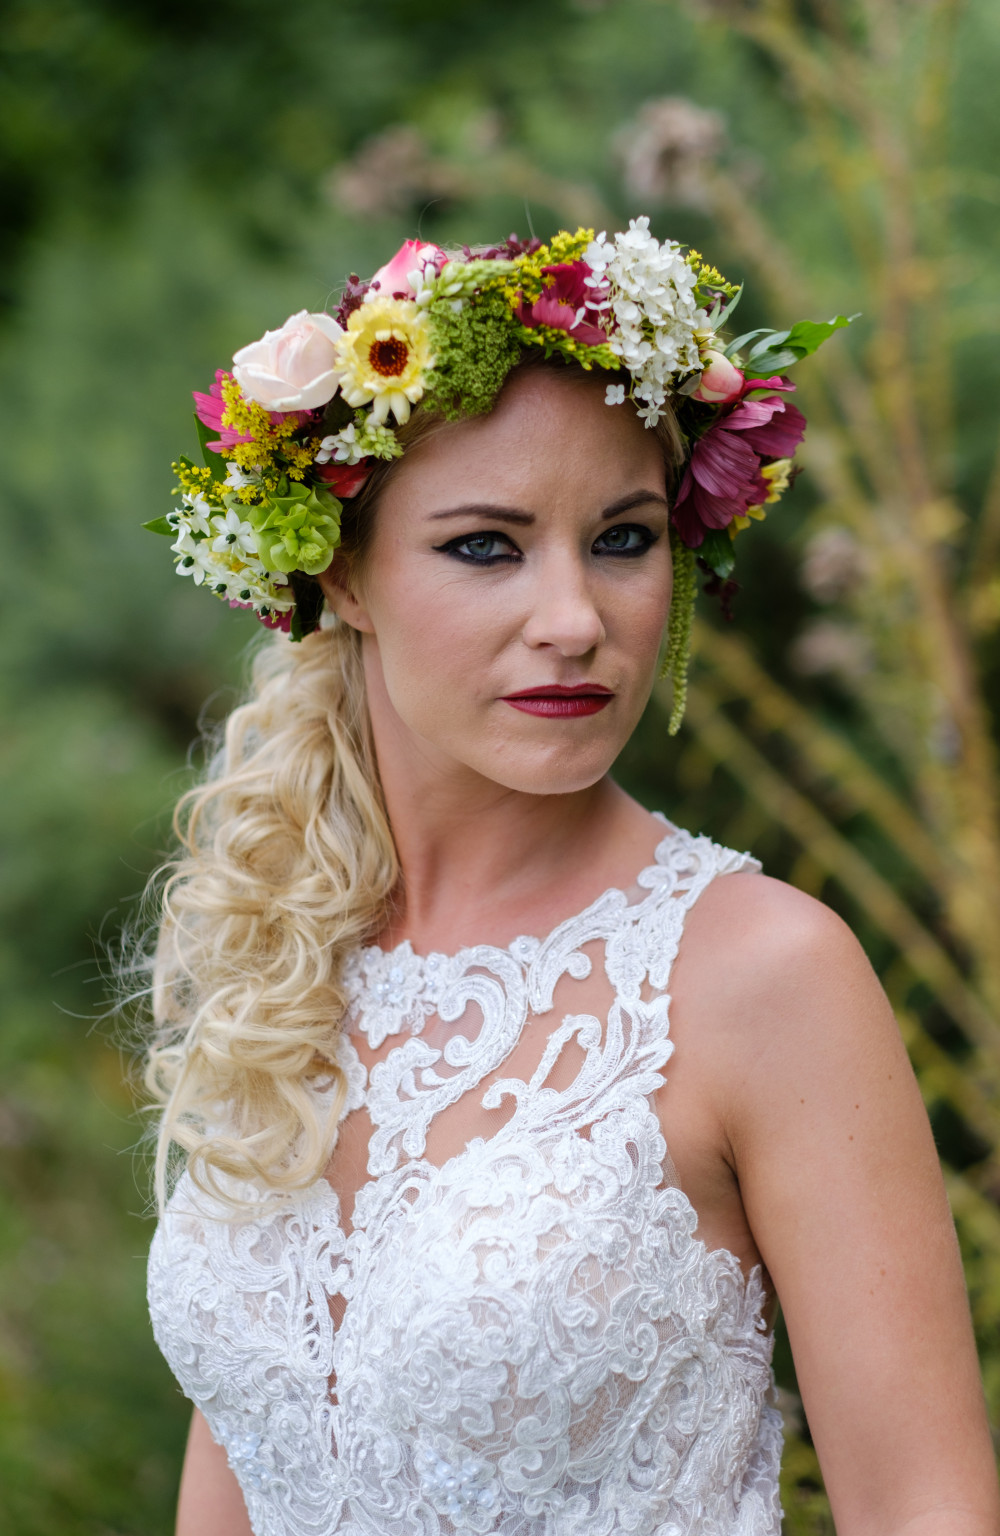 A beautiful colourful flower crown for a quirky wedding - Make Me Bridal Artist: Viktoria Kohl Makeup and Hair. Photography by: Gareth Davies. #boho #flowercrown